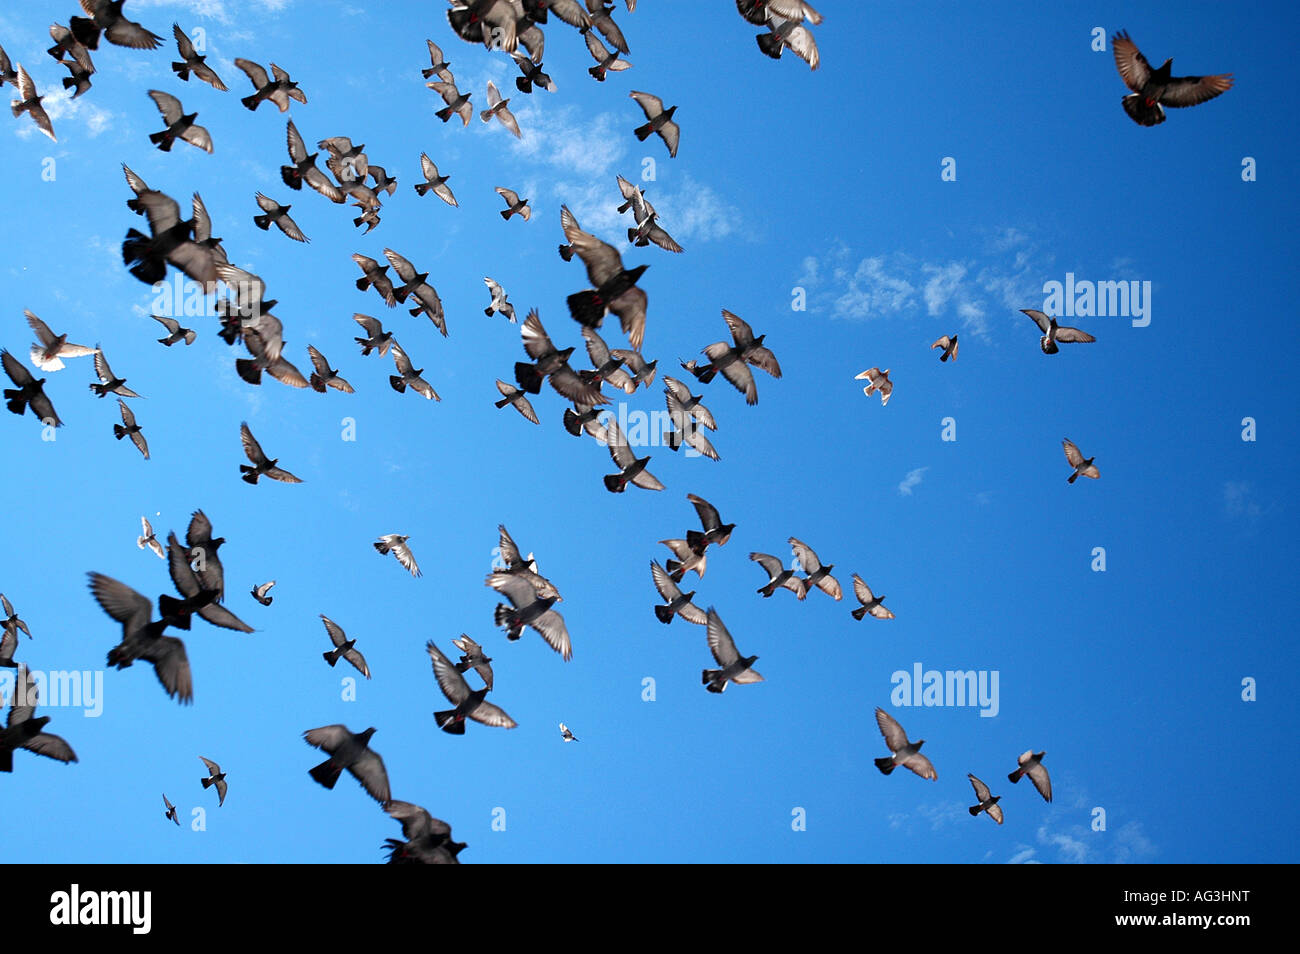 Birds flying over the Old Town Dubtrovnik, Croatia - Stock Image